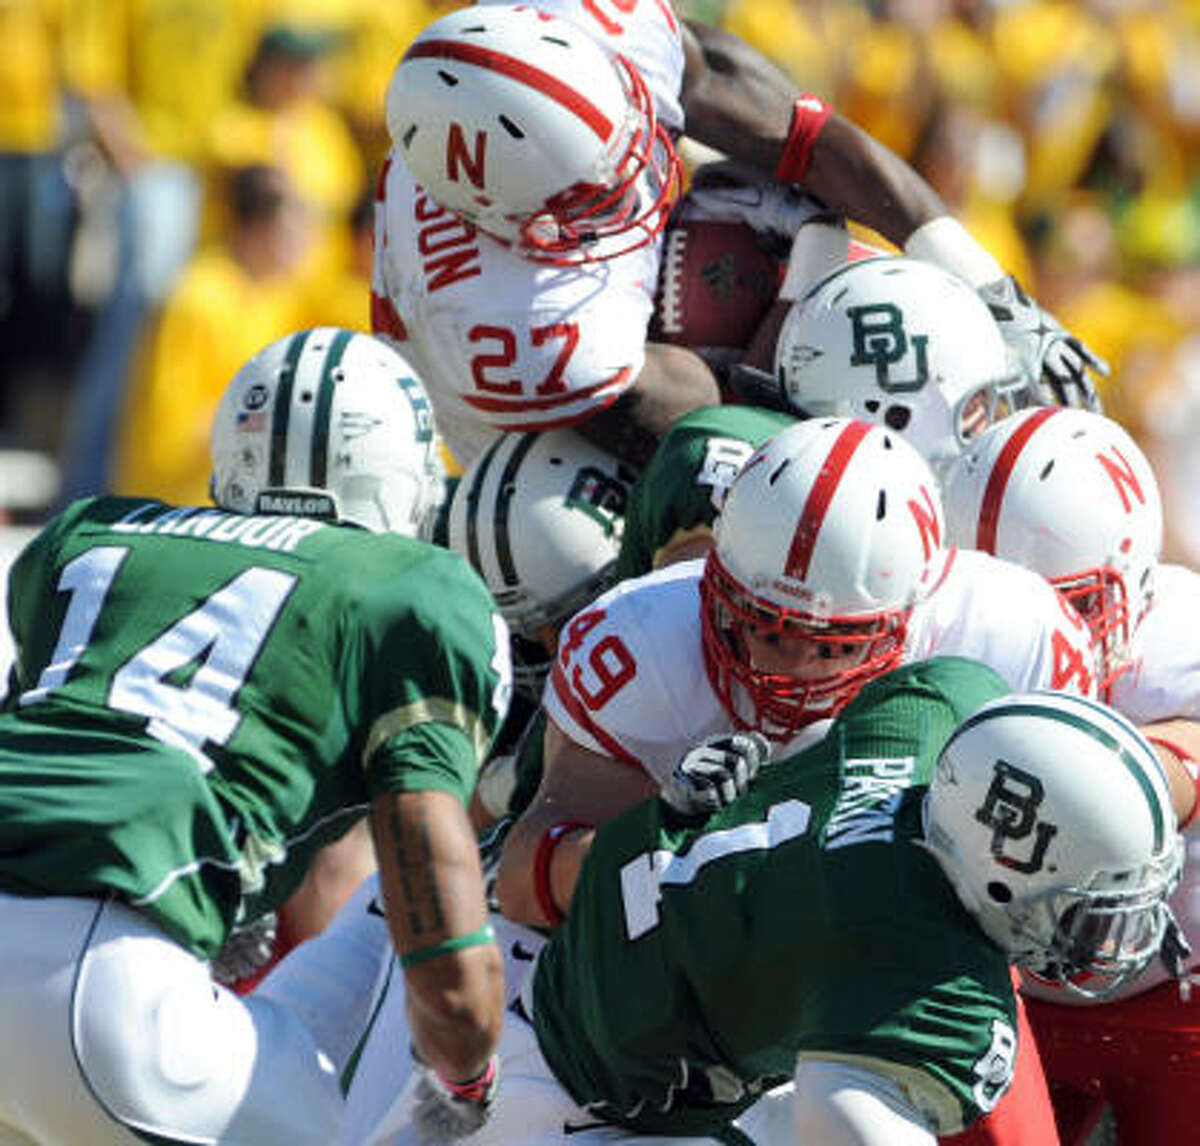 Nebraska Dontrayevous Robinson scores in the second quarter over Baylor's Byron Landor (14) and Earl Patin during Saturday afternoon's game in Waco.